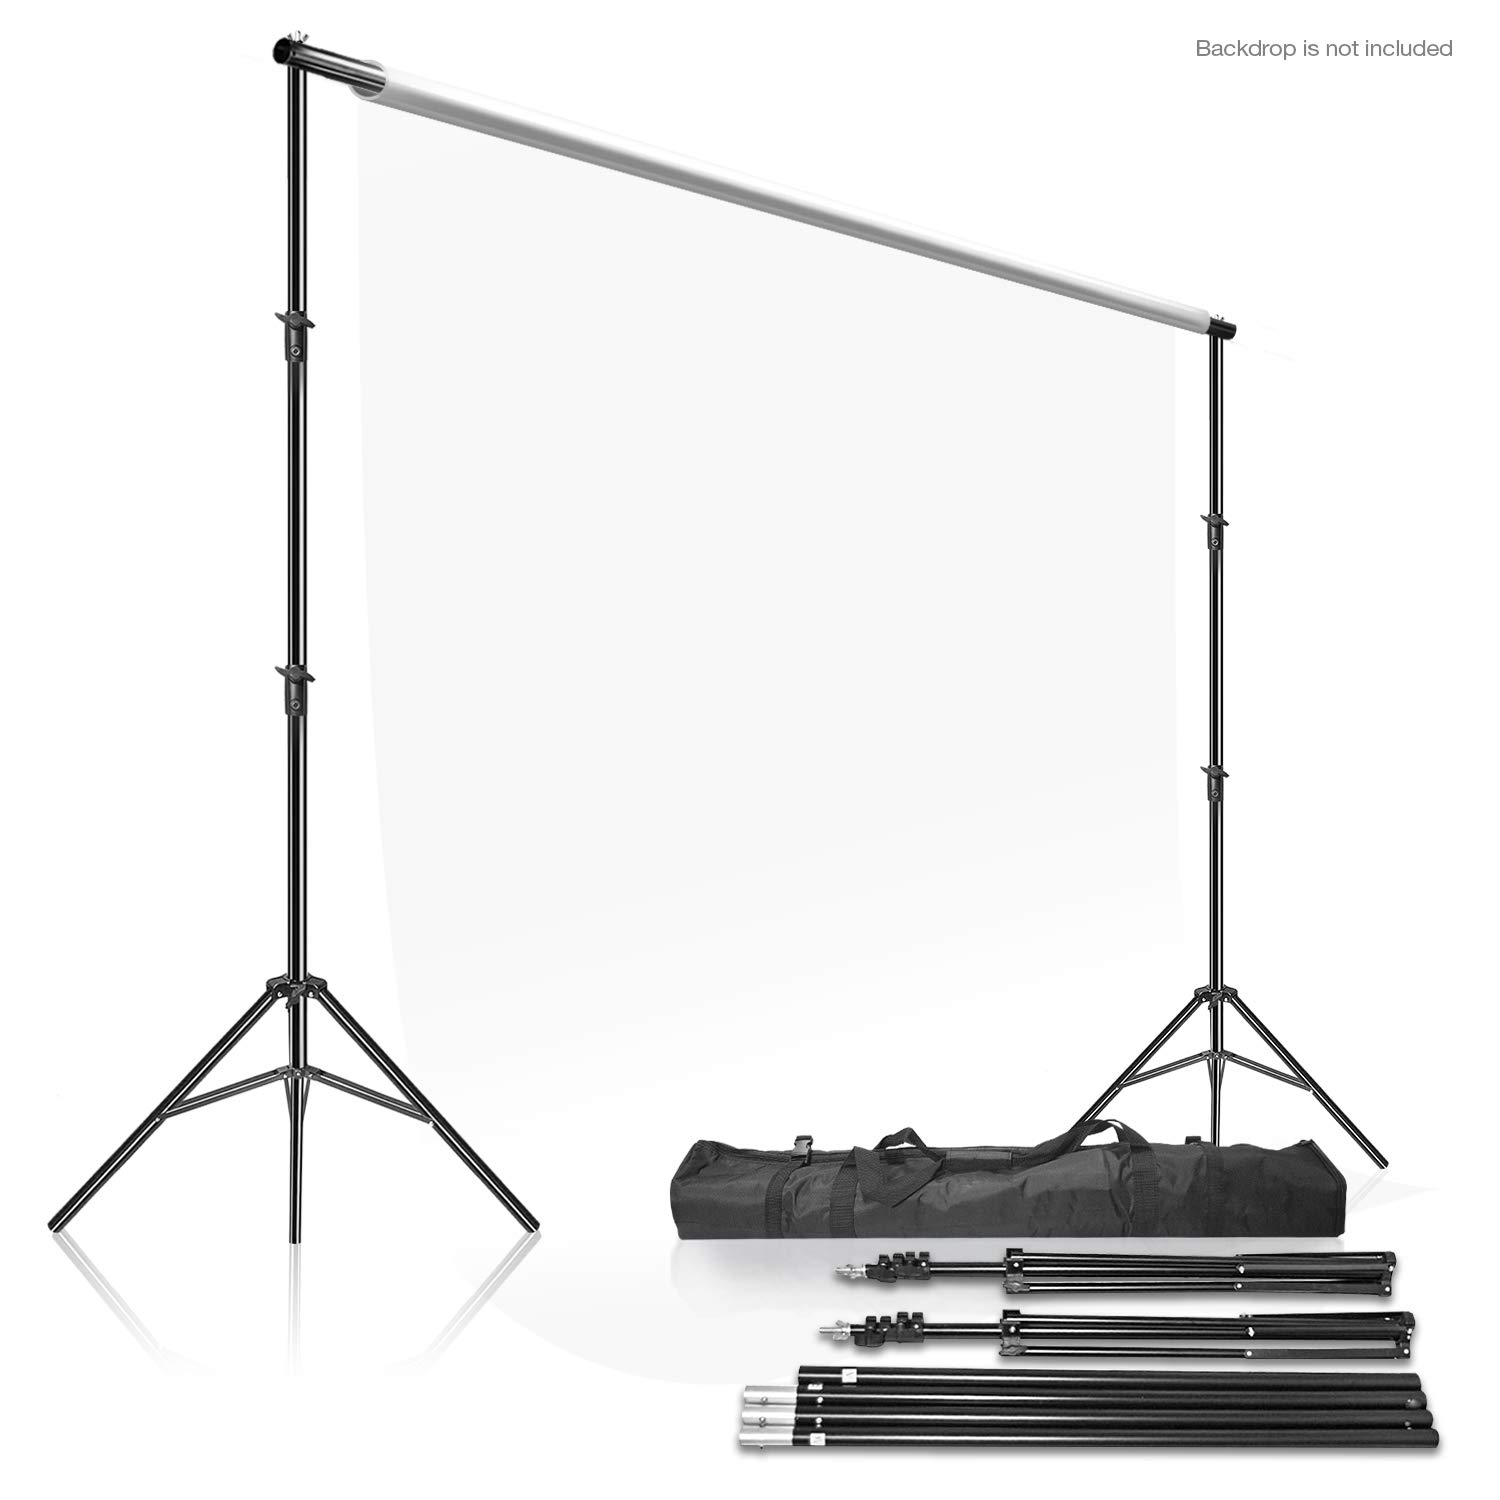 LimoStudio Photo Video Studio 10Ft Adjustable Muslin Background Backdrop Support System Stand, AGG2862 by LS LIMO STUDIO LIMOSTUDIO